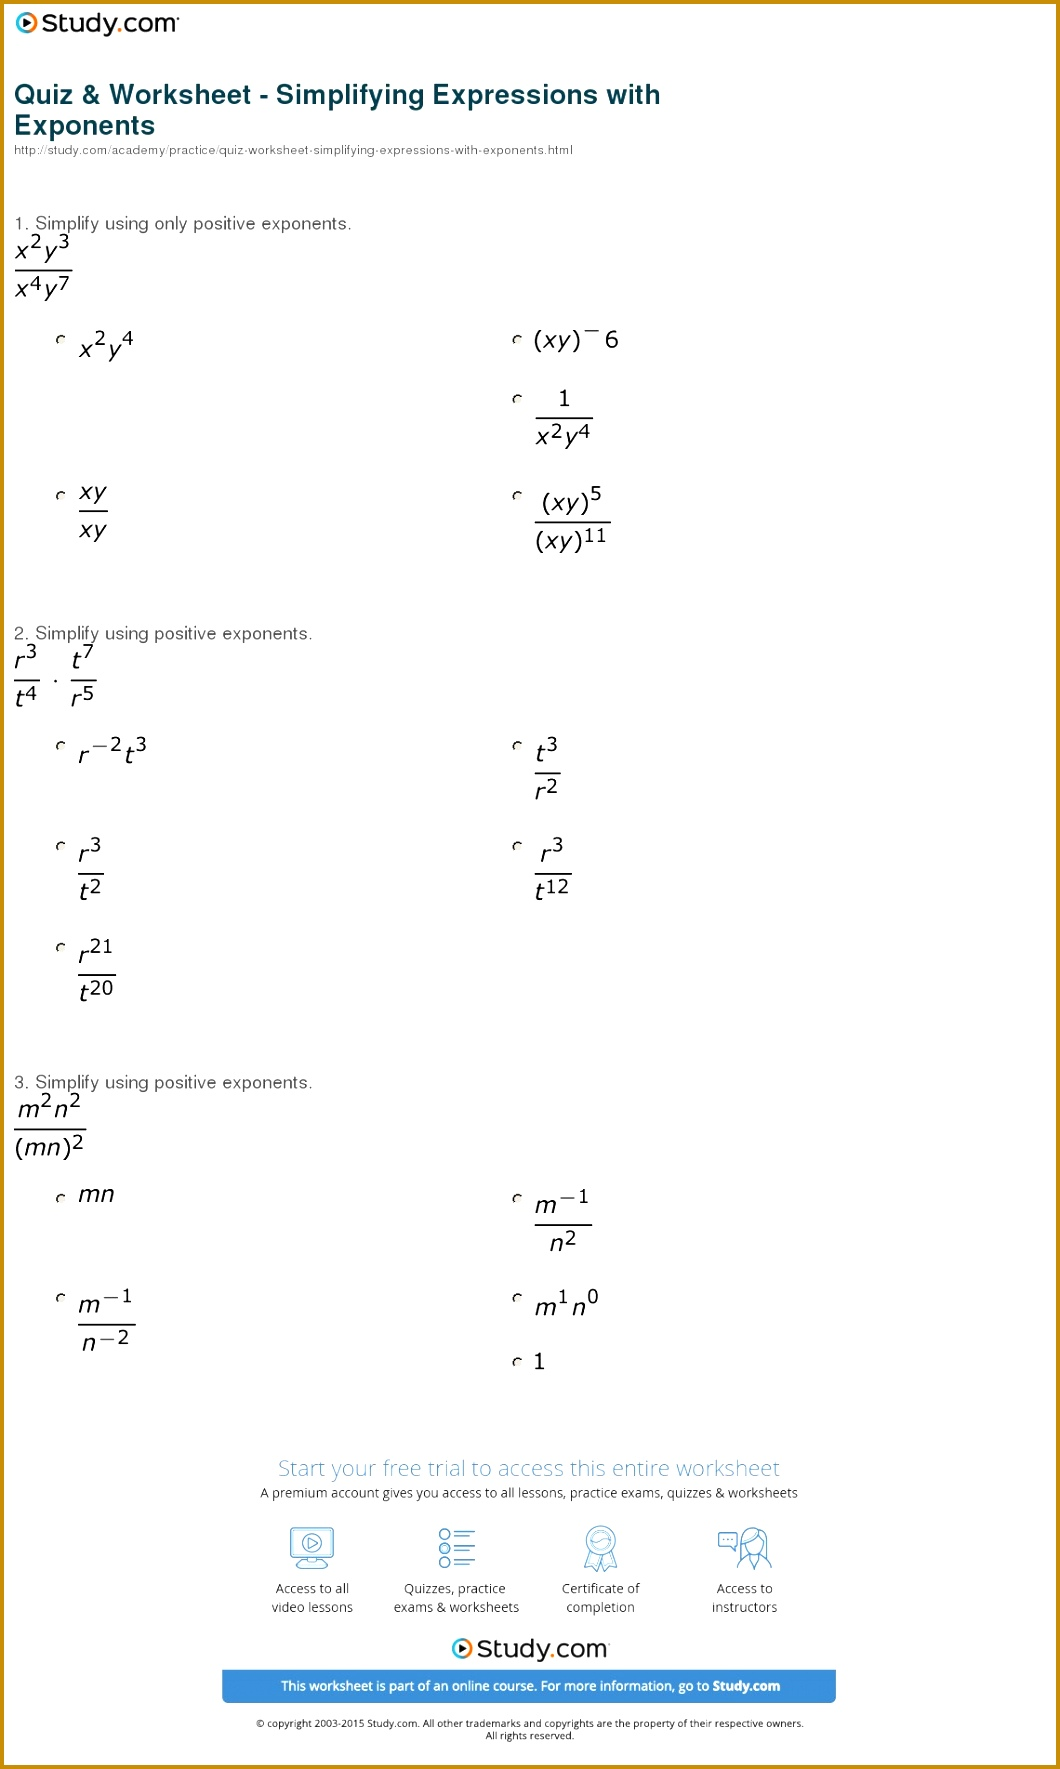 Print How to Simplify Expressions with Exponents Worksheet 10601769